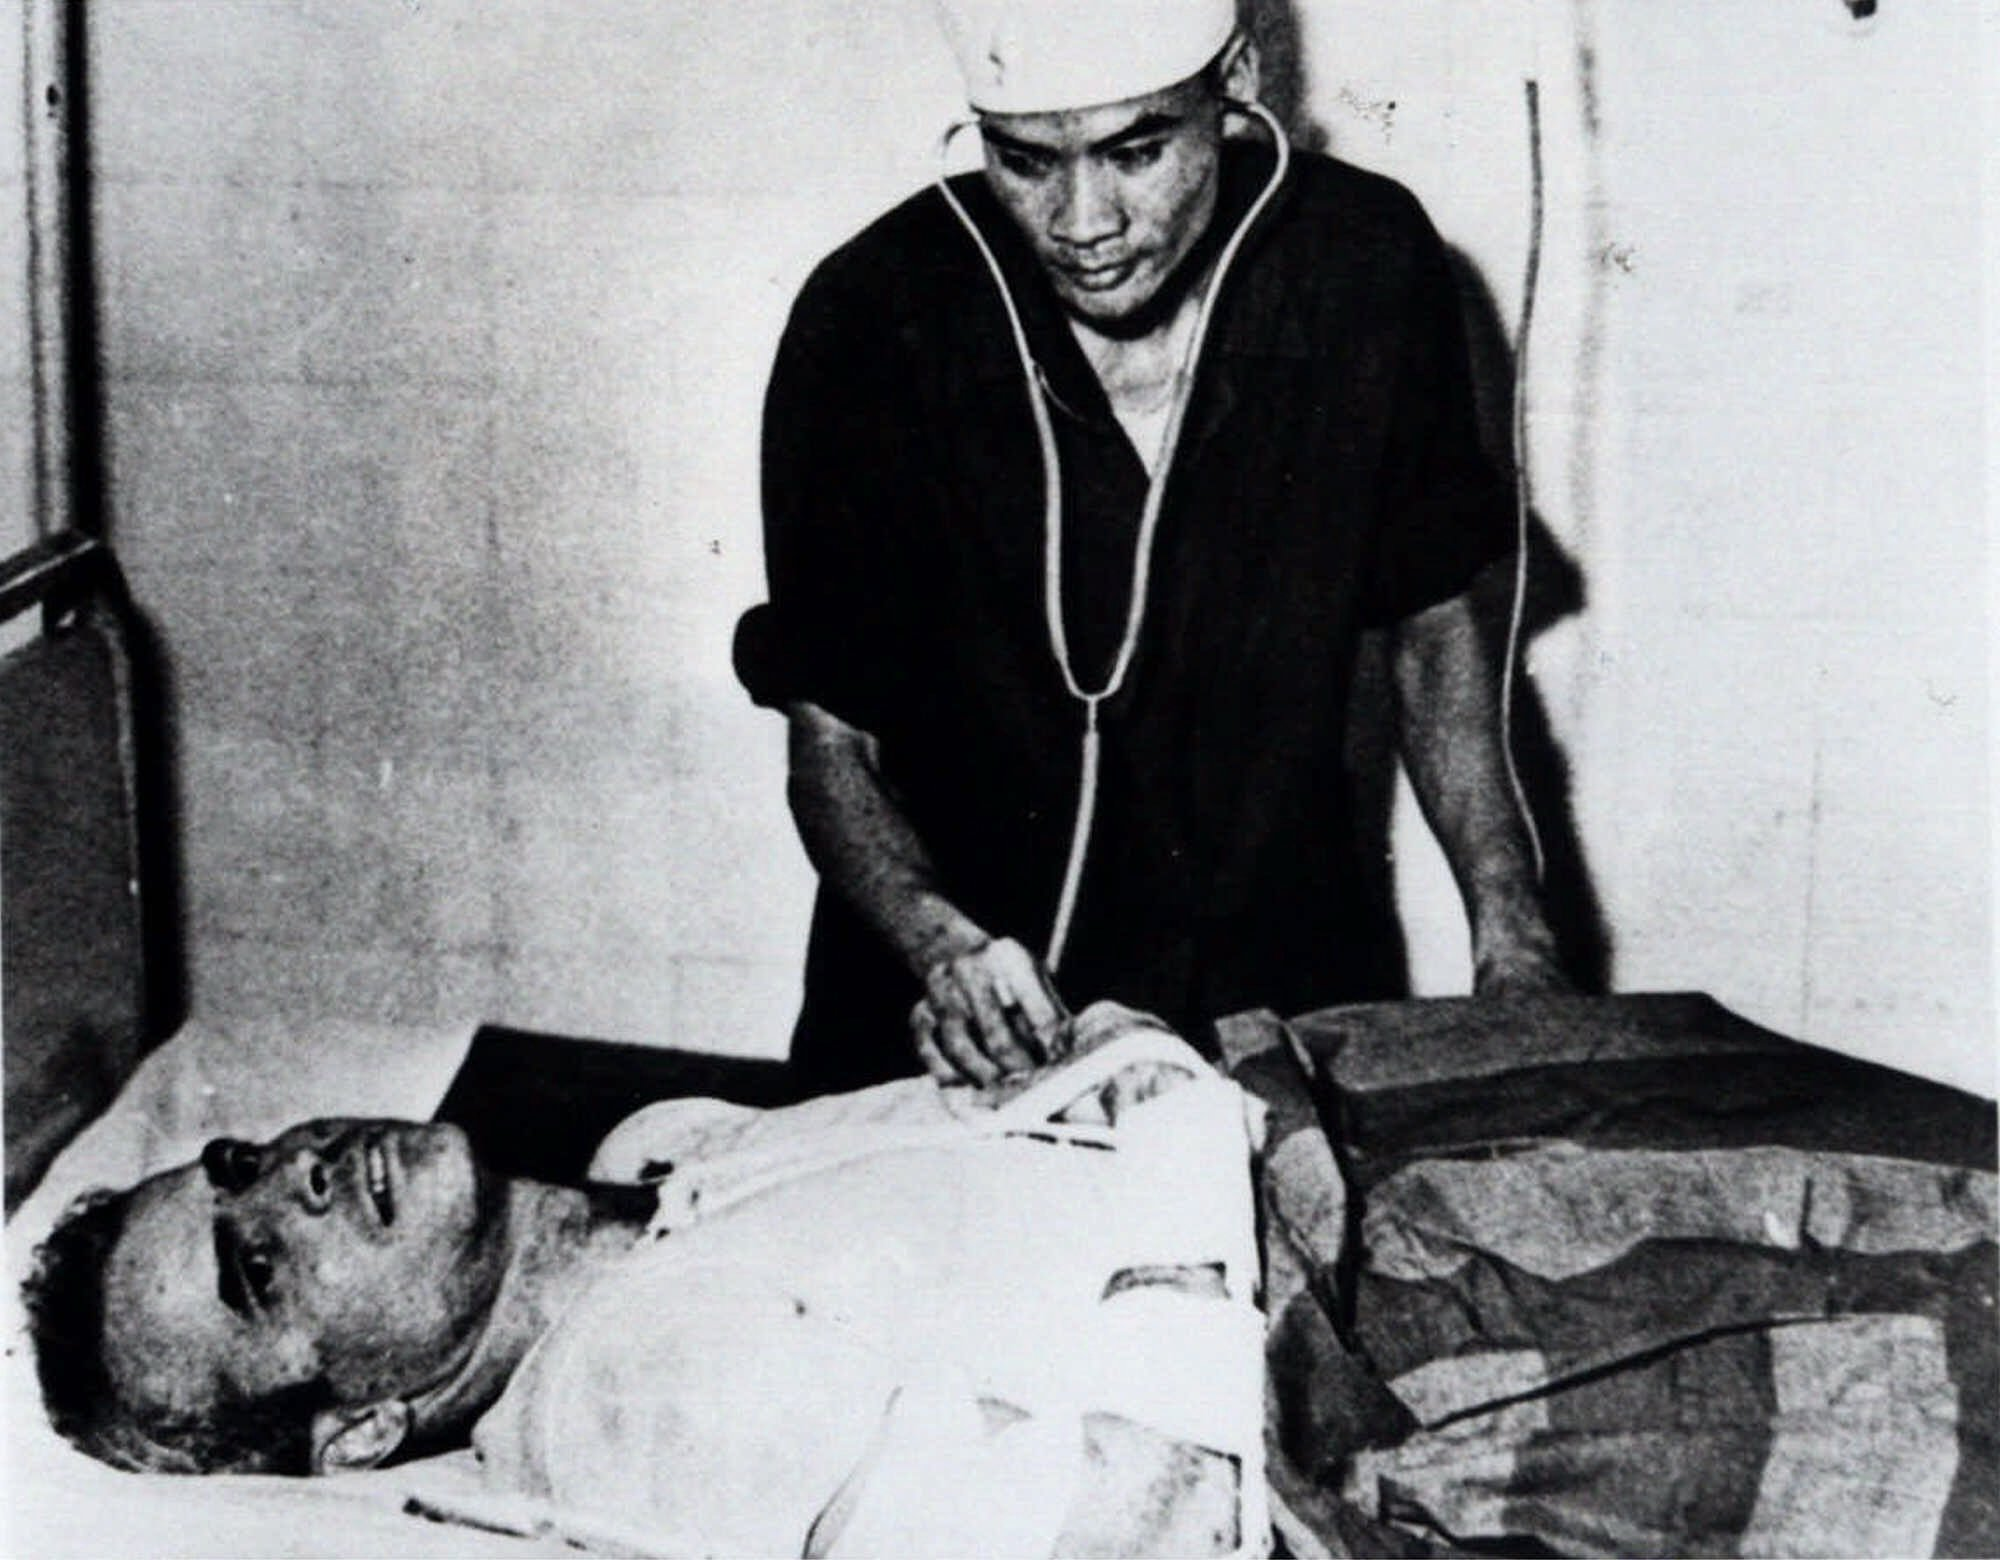 John McCain is administered to a Hanoi, Vietnam, hospital as a prisoner of war in the fall of 1967. McCain spent 20 years in the U.S. Navy, a quarter of it in a Vietnamese POW camp after his jet was shot down over Hanoi during an Oct. 26, 1967, bombing mission. (AP)